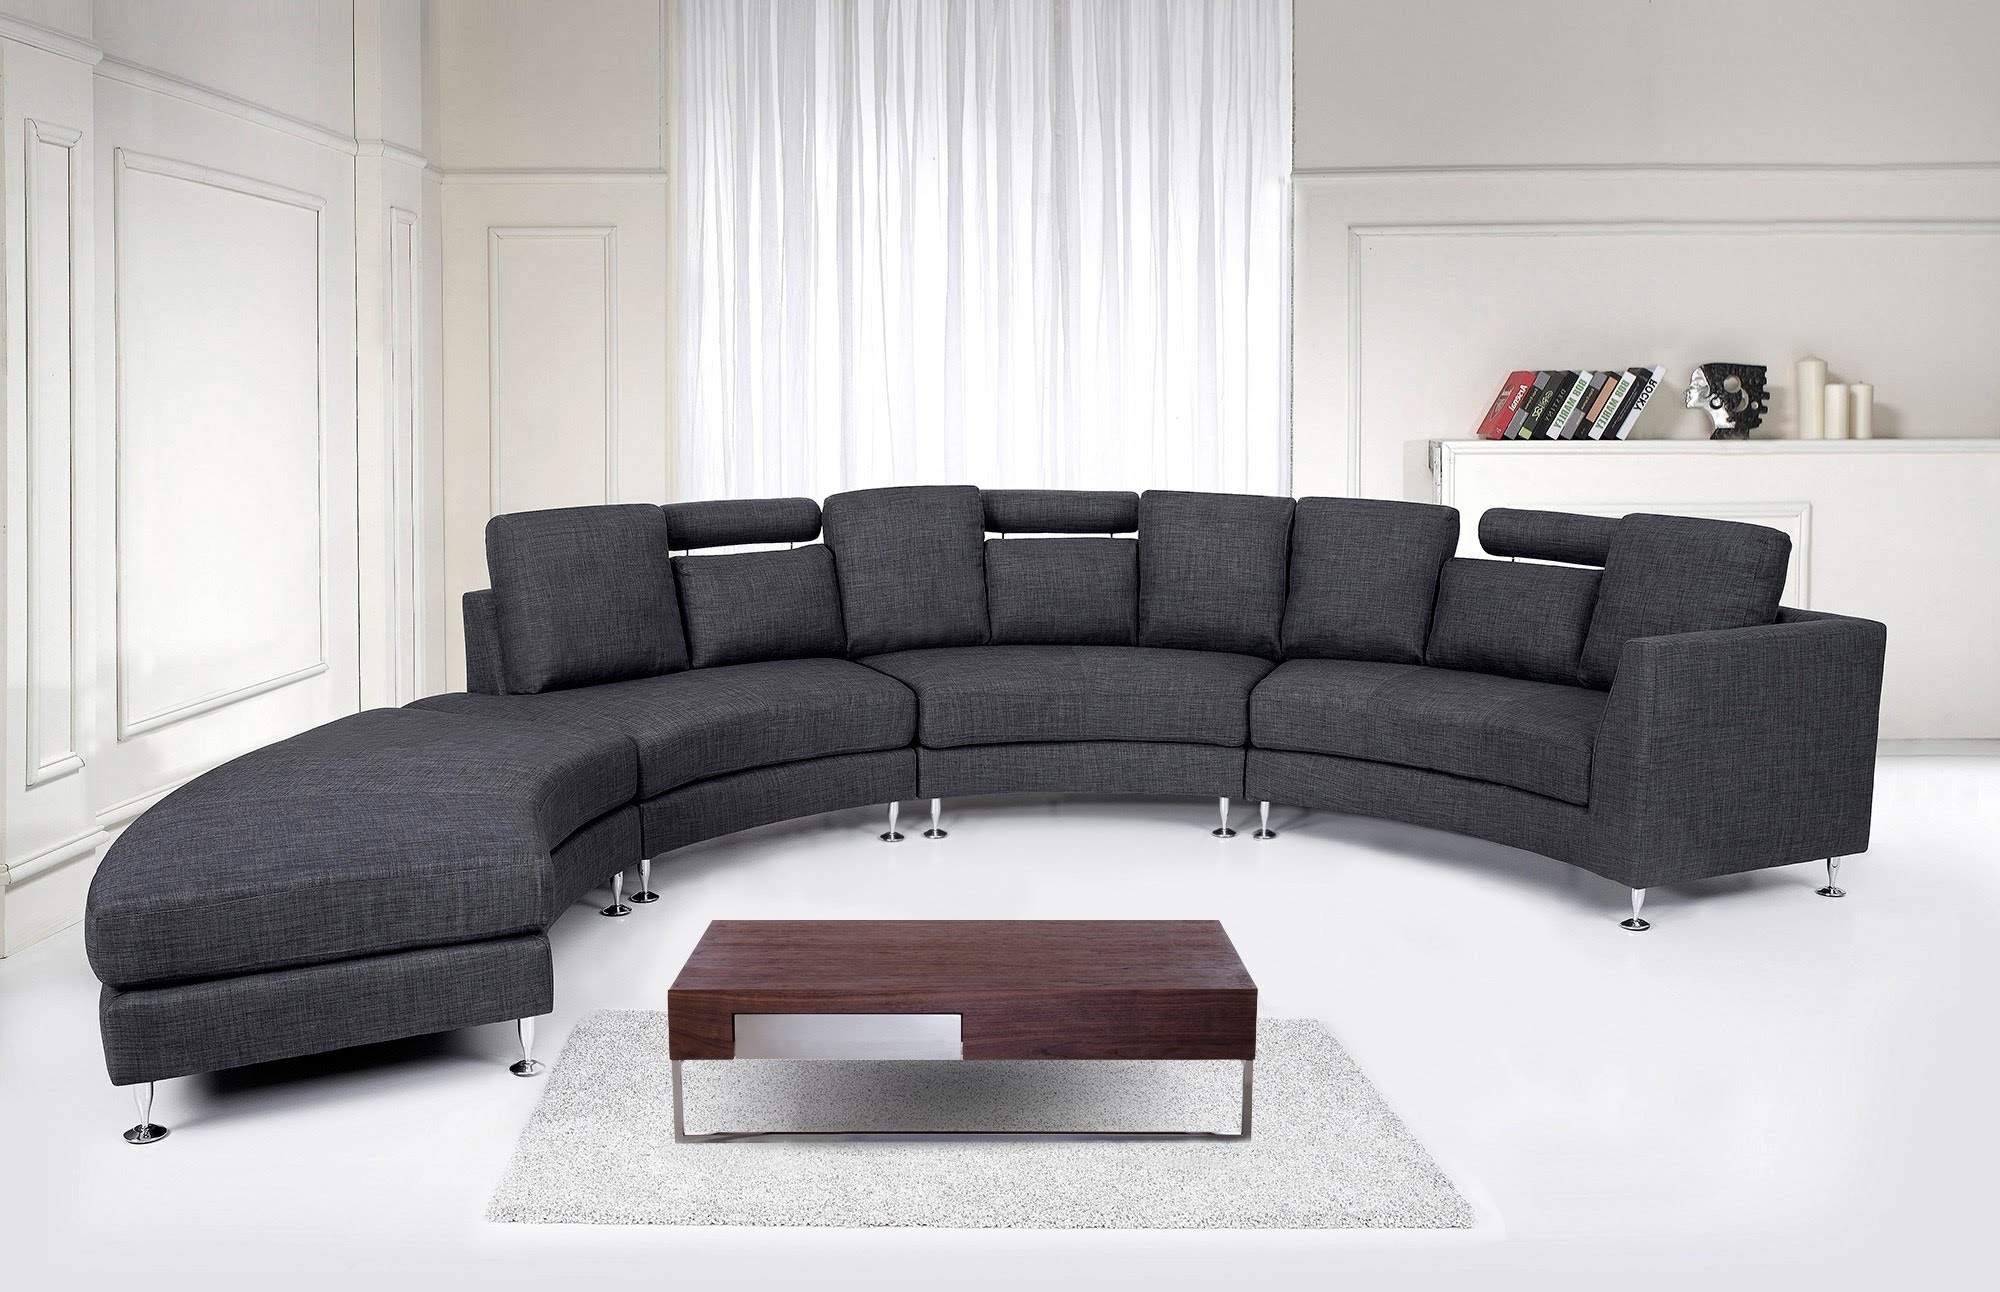 Round Sofas With Regard To Fashionable Round Sofa (View 9 of 15)